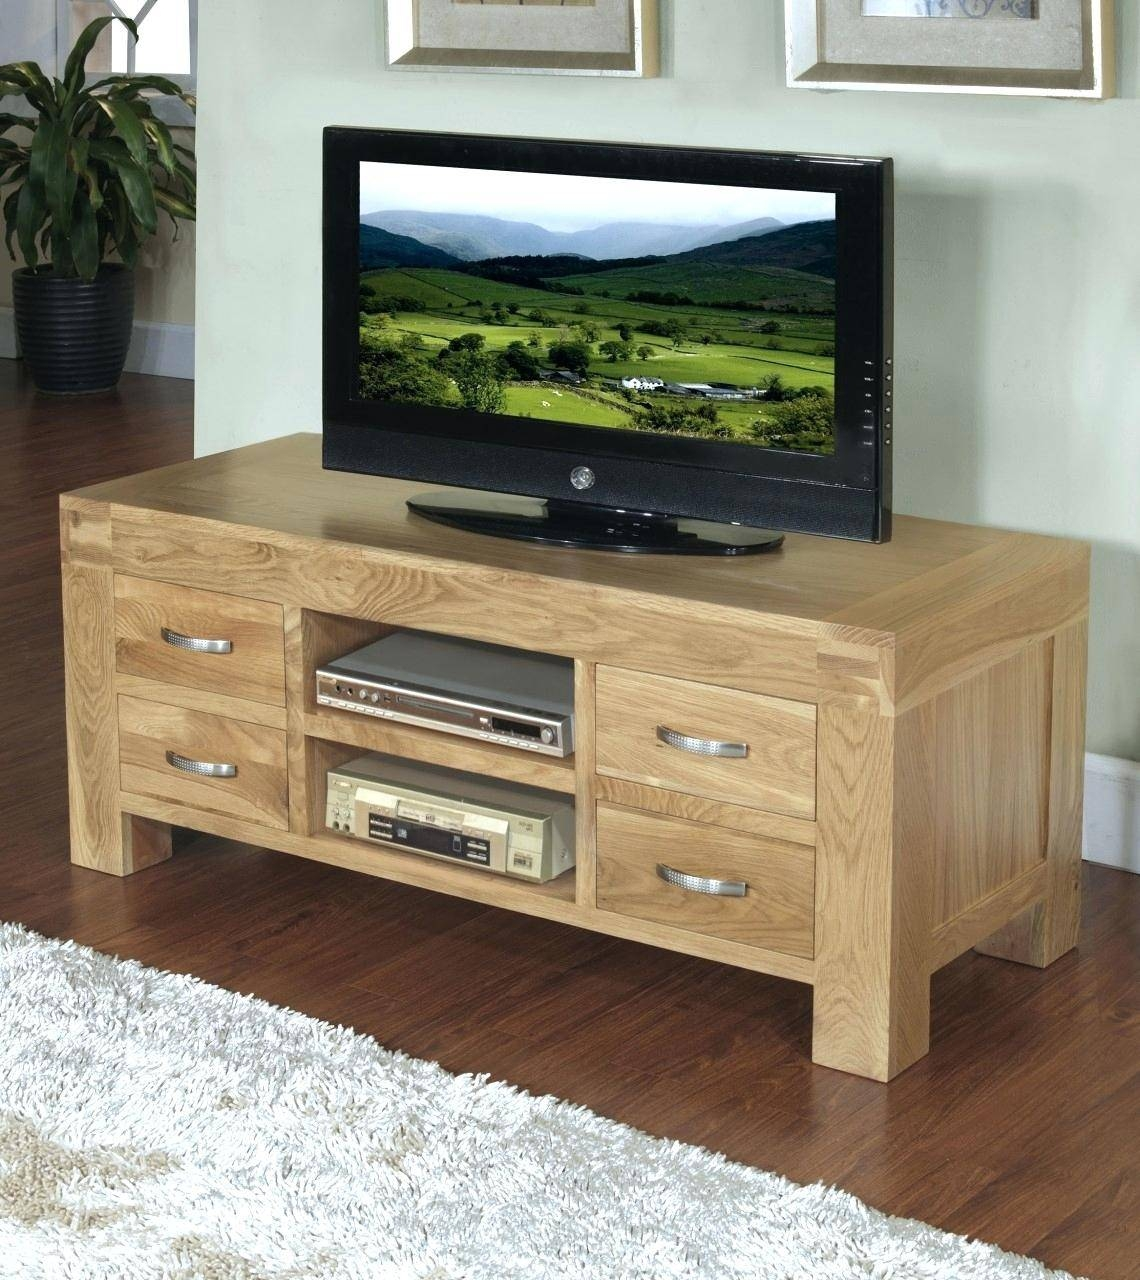 Tv Stand Cabinet Unit Large 16mtr Black Gloss Stainless Modern Inside Corner Sideboard Unit (View 6 of 20)